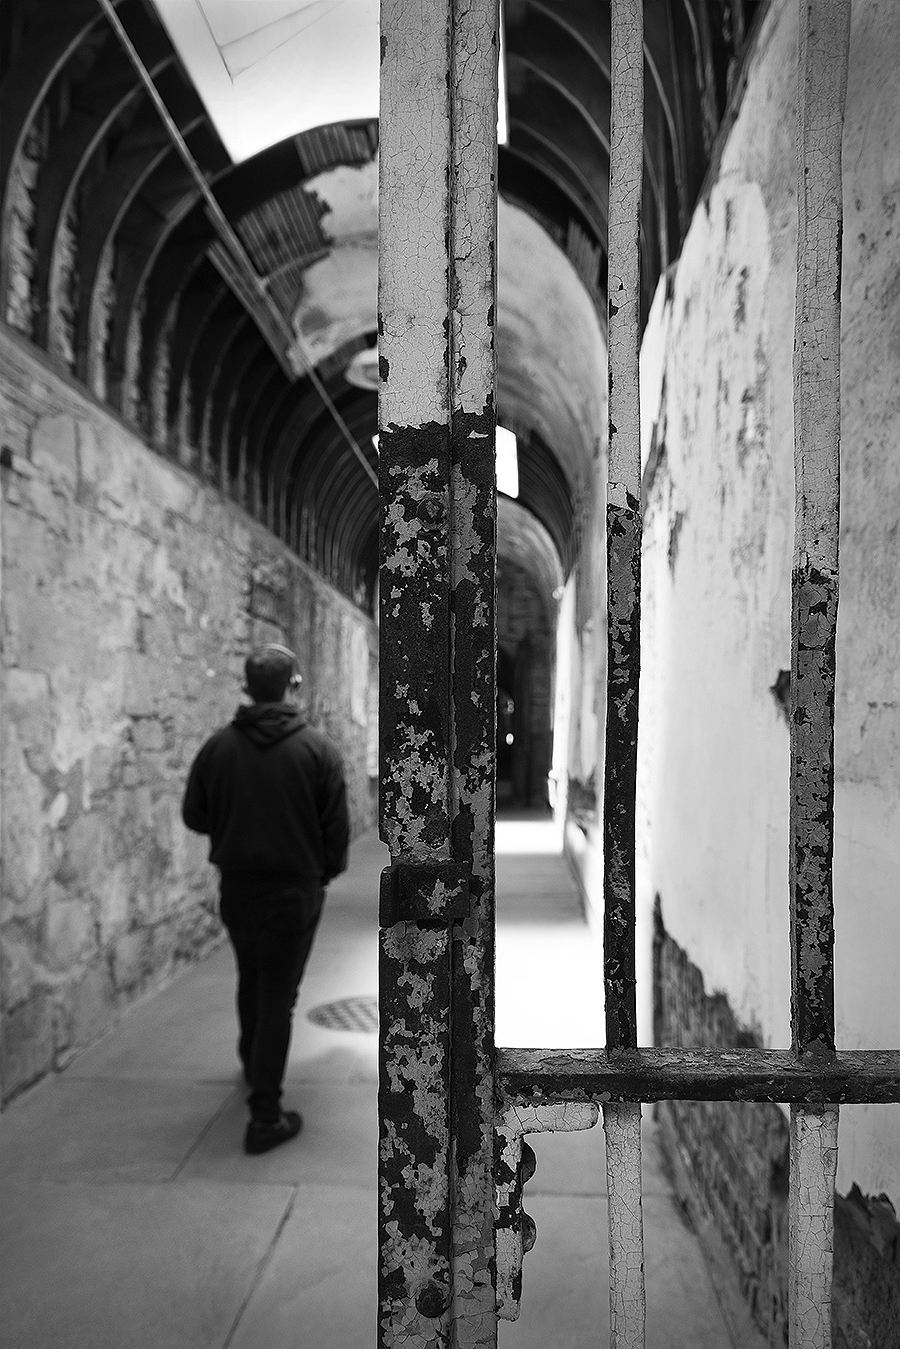 Zoe_Photography_EasternStatePenitentiary_Philadelphia_TheLostPast_WalkingIntoThePain